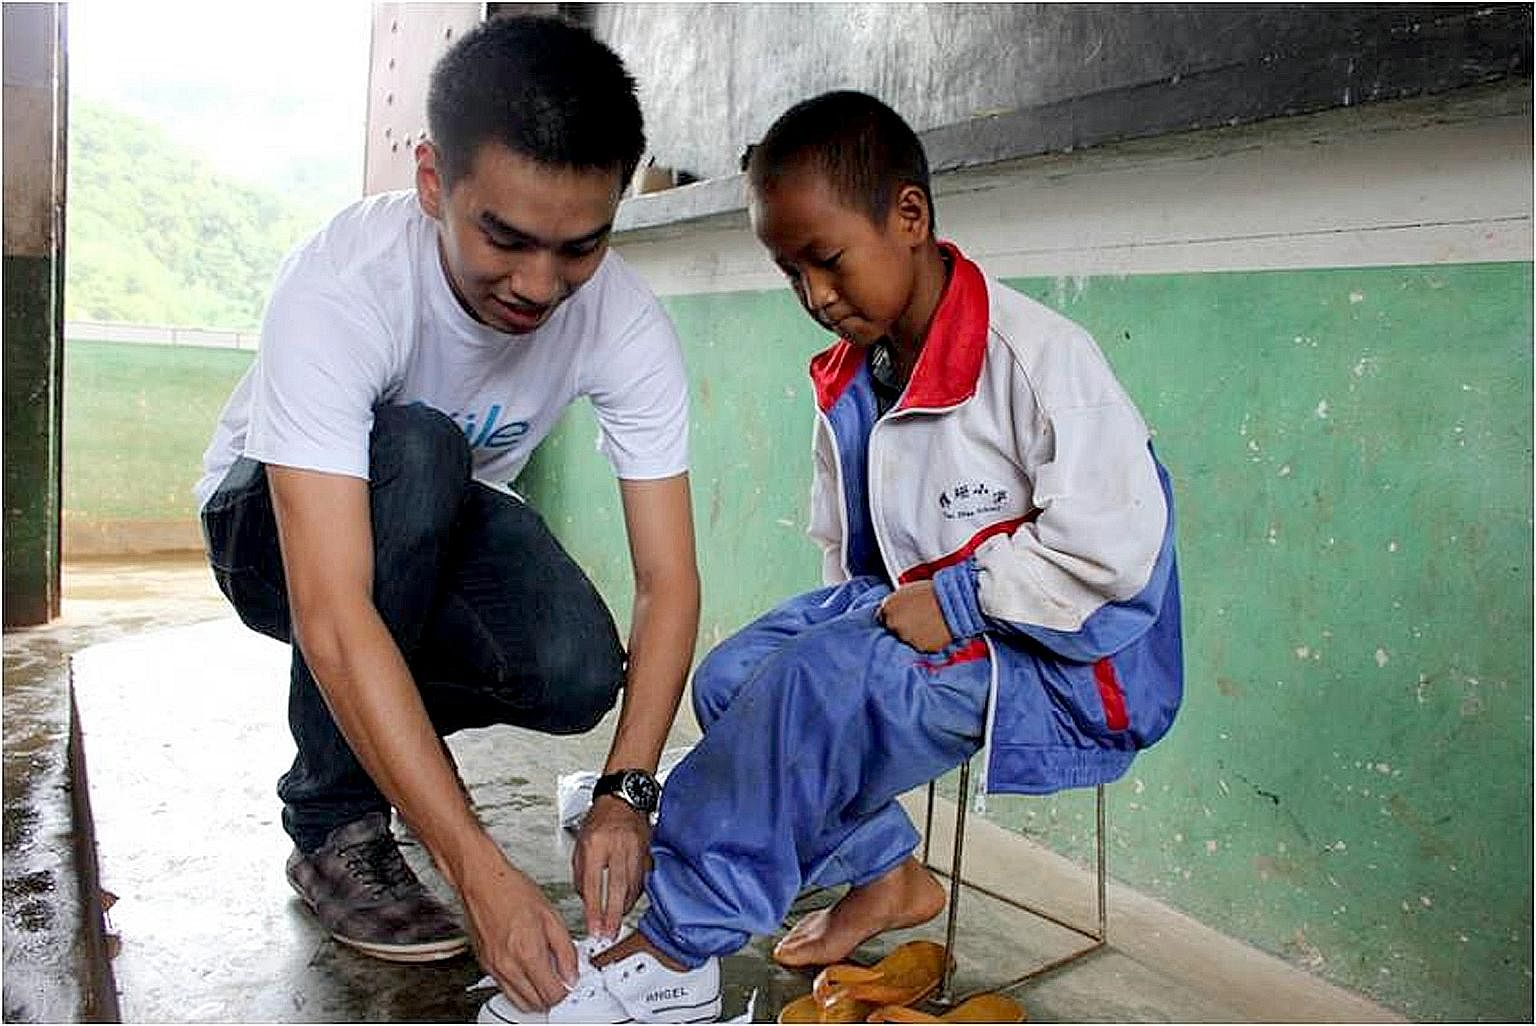 Mr Lee putting on shoes for a schoolboy in Lincang, Yunnan, in 2010. Soule's first batch of flip-flops sold out, and the proceeds were enough to buy 317 pairs of shoes for one entire school in Lincang. Mr Justine Lee was a rebellious child who did ba